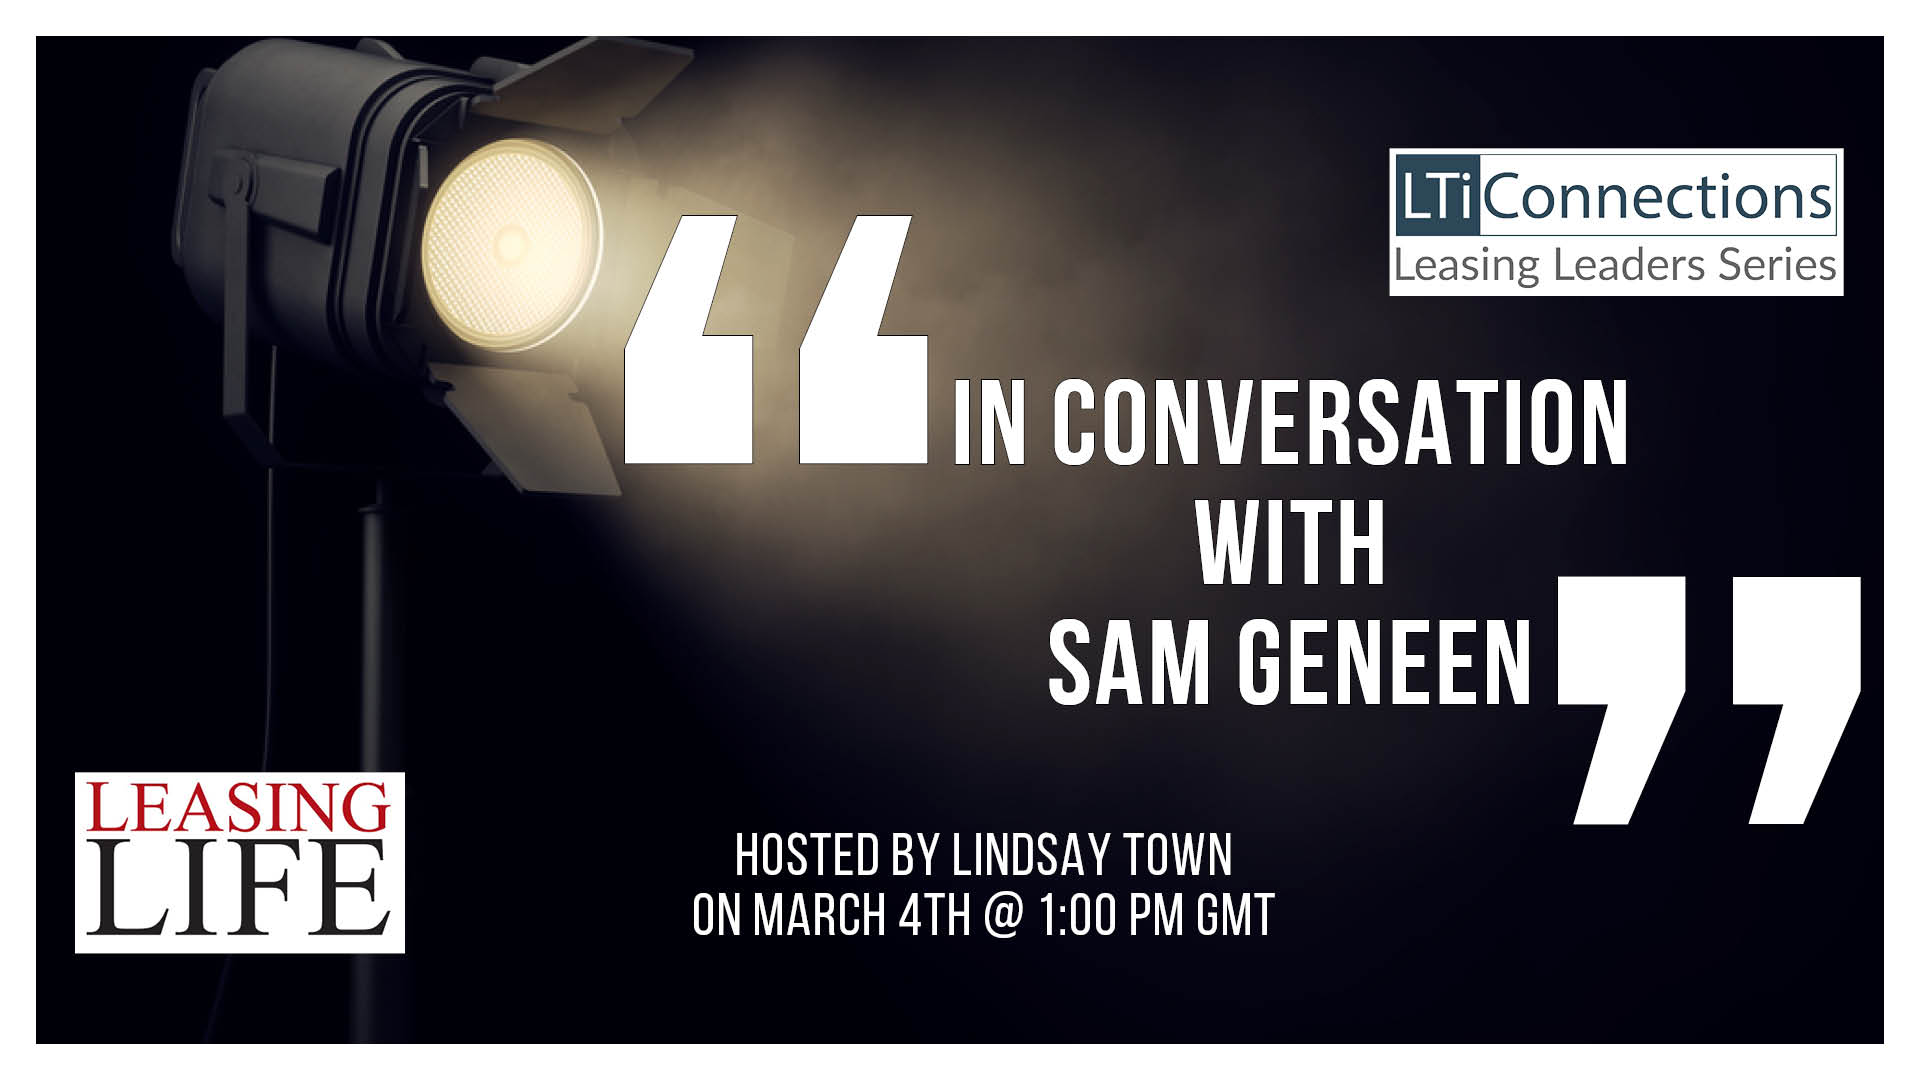 Interview with Sam Geneen to open LTi's Leasing Leaders Series